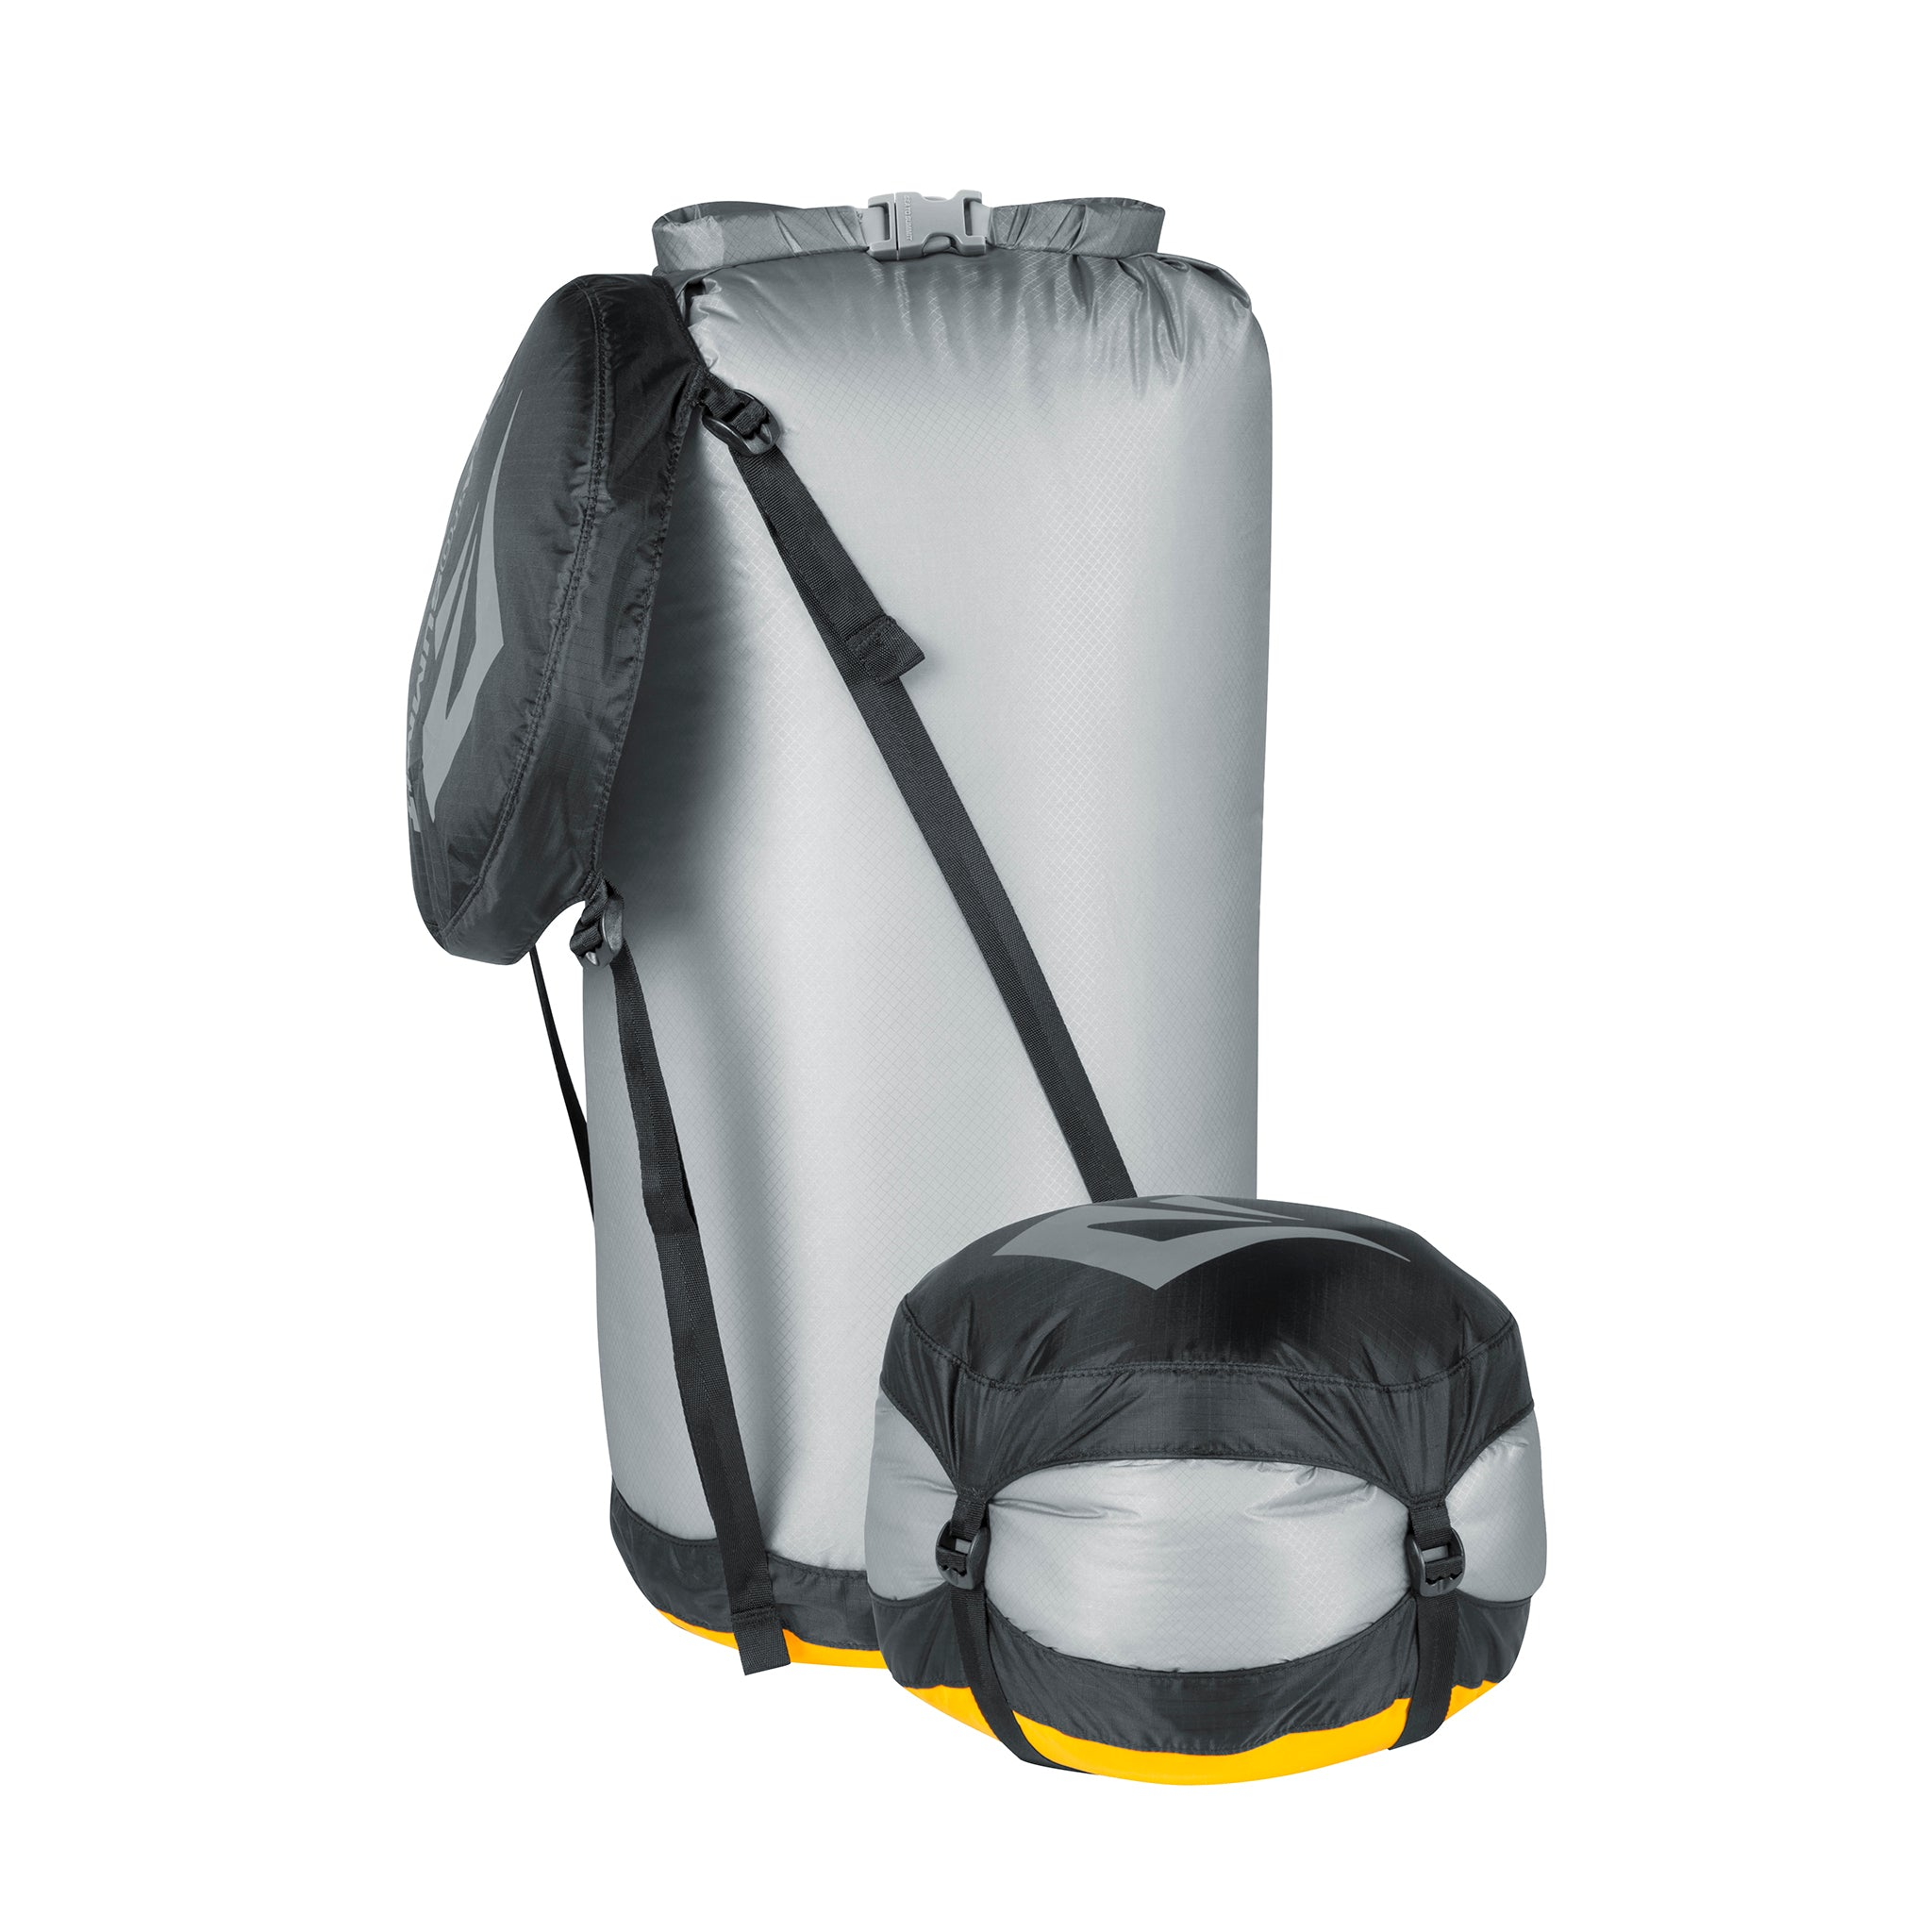 Ultra-Sil_eVent_Compression_Waterproof Dry Bag___20 Liter